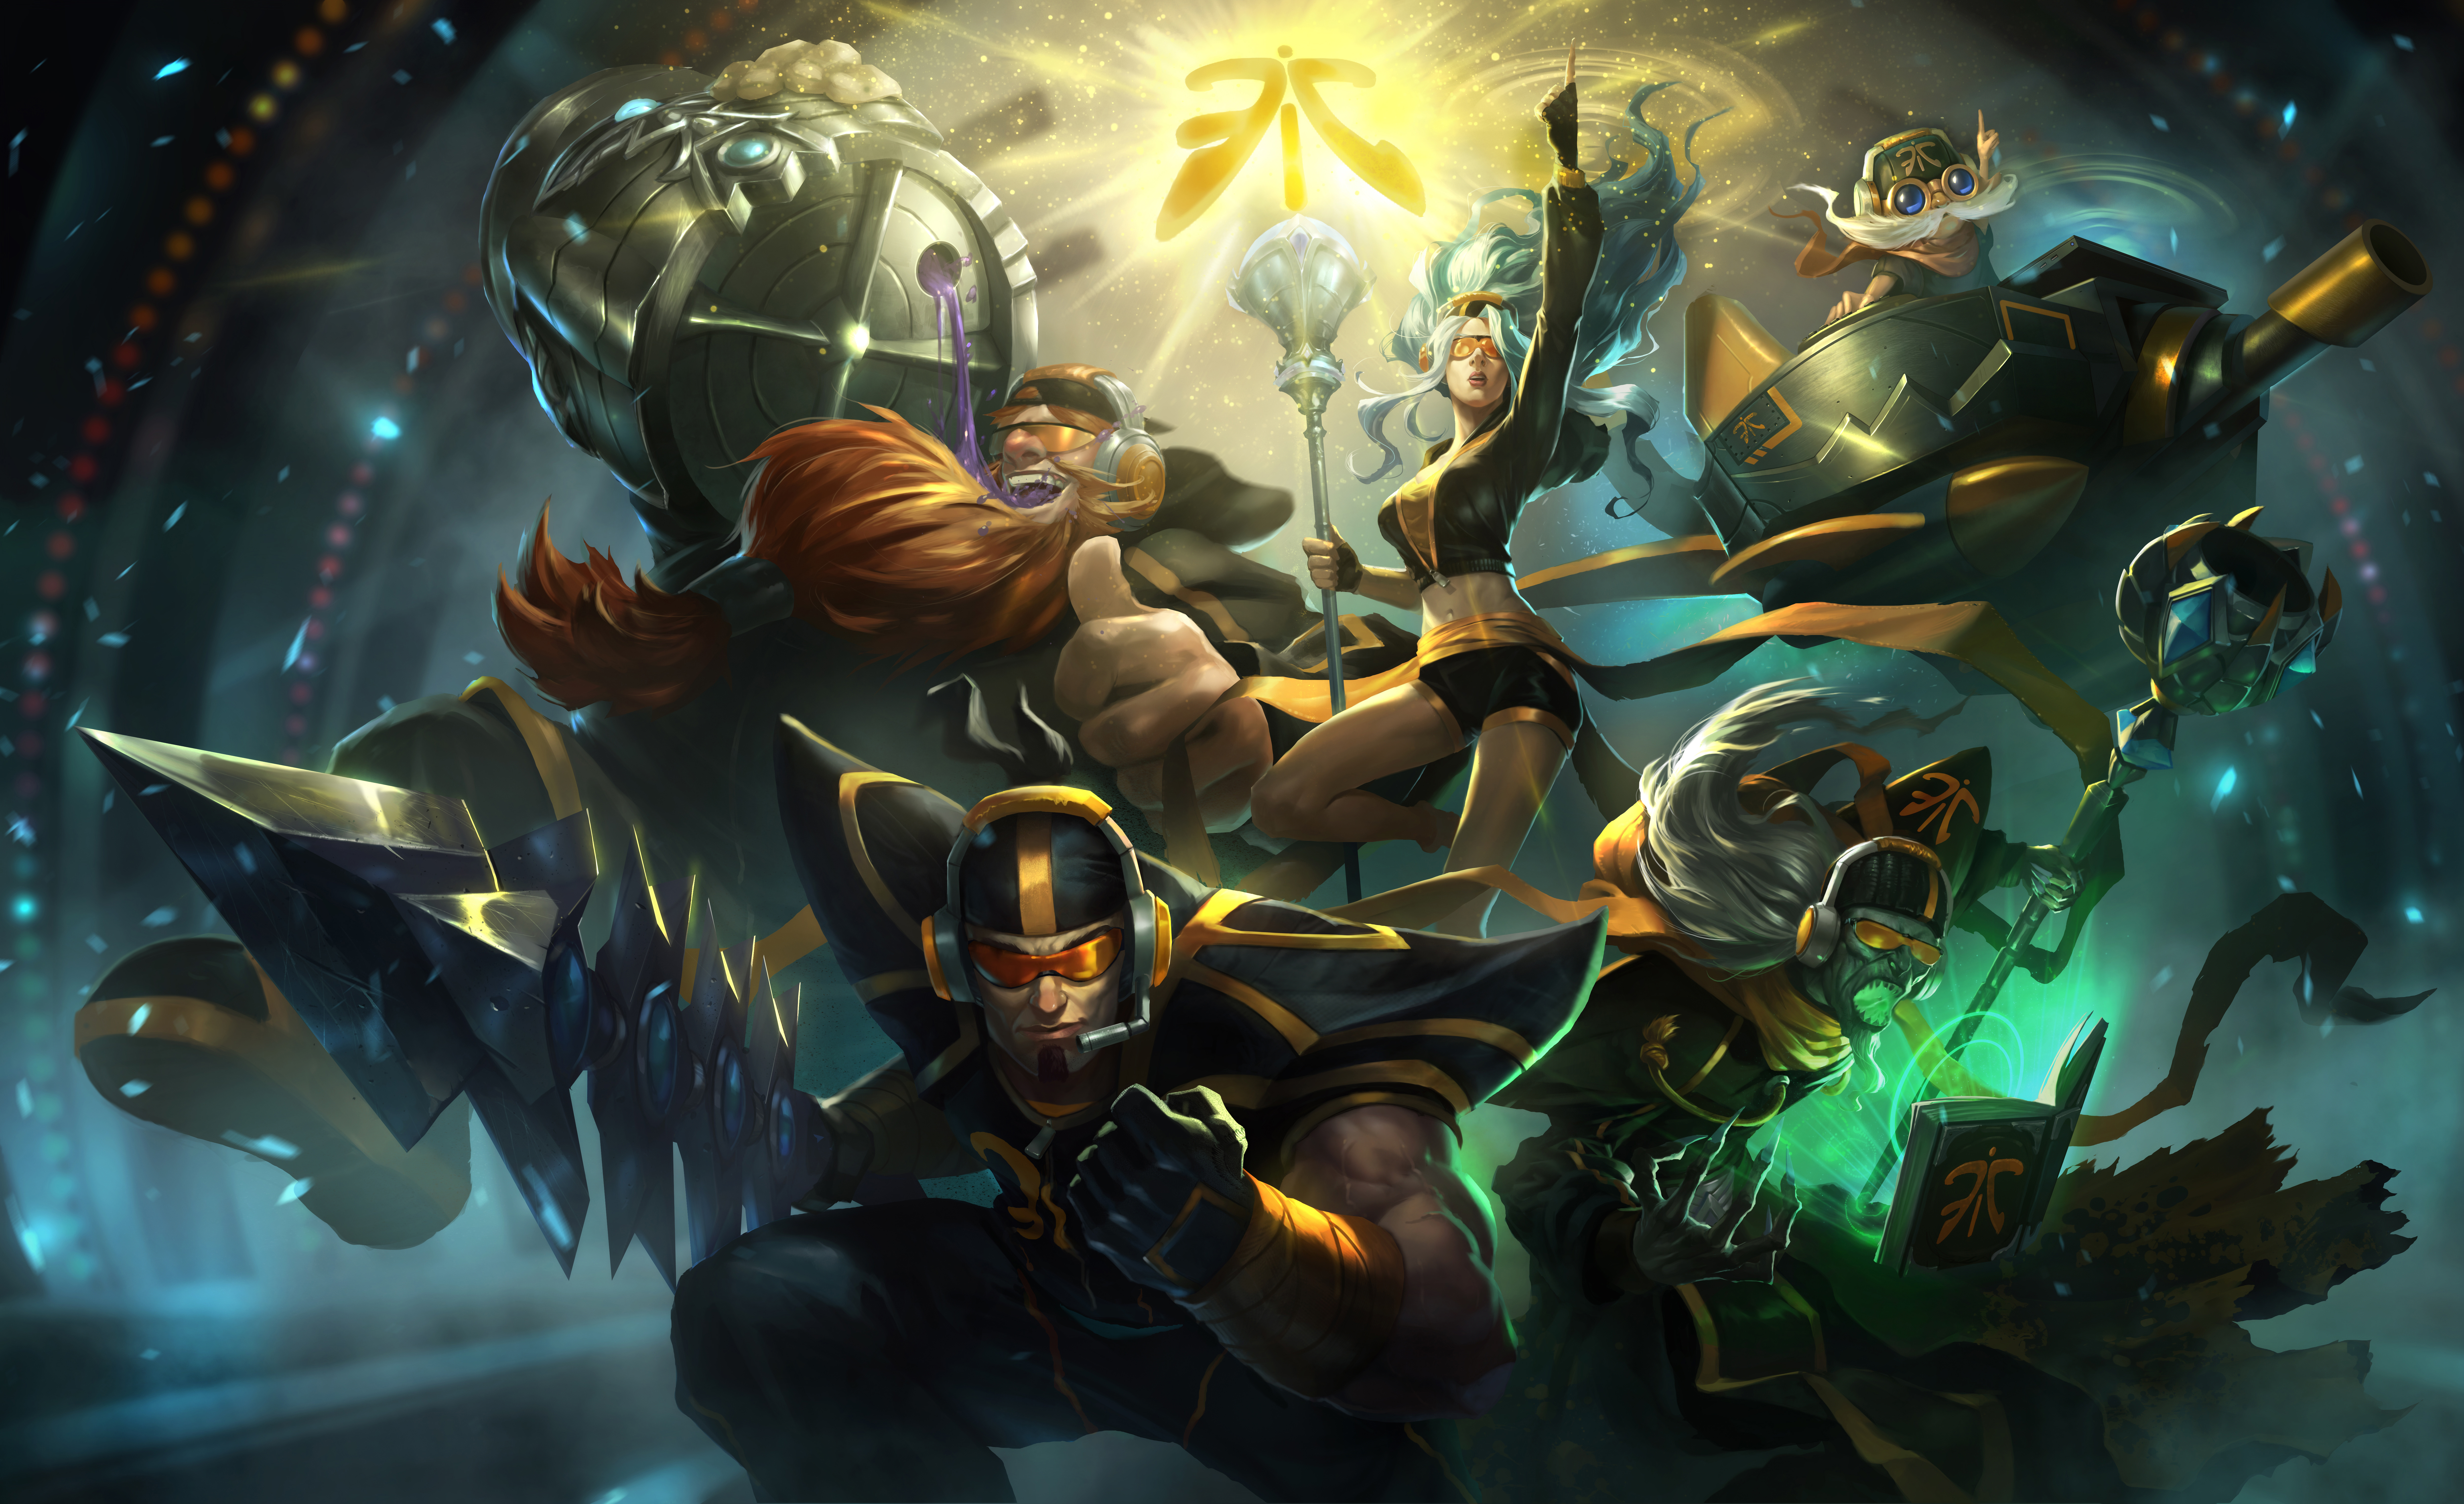 Fnatic Gragas Karthus Corki Jarvan IV Janna LoL Wallpapers 10000x6105